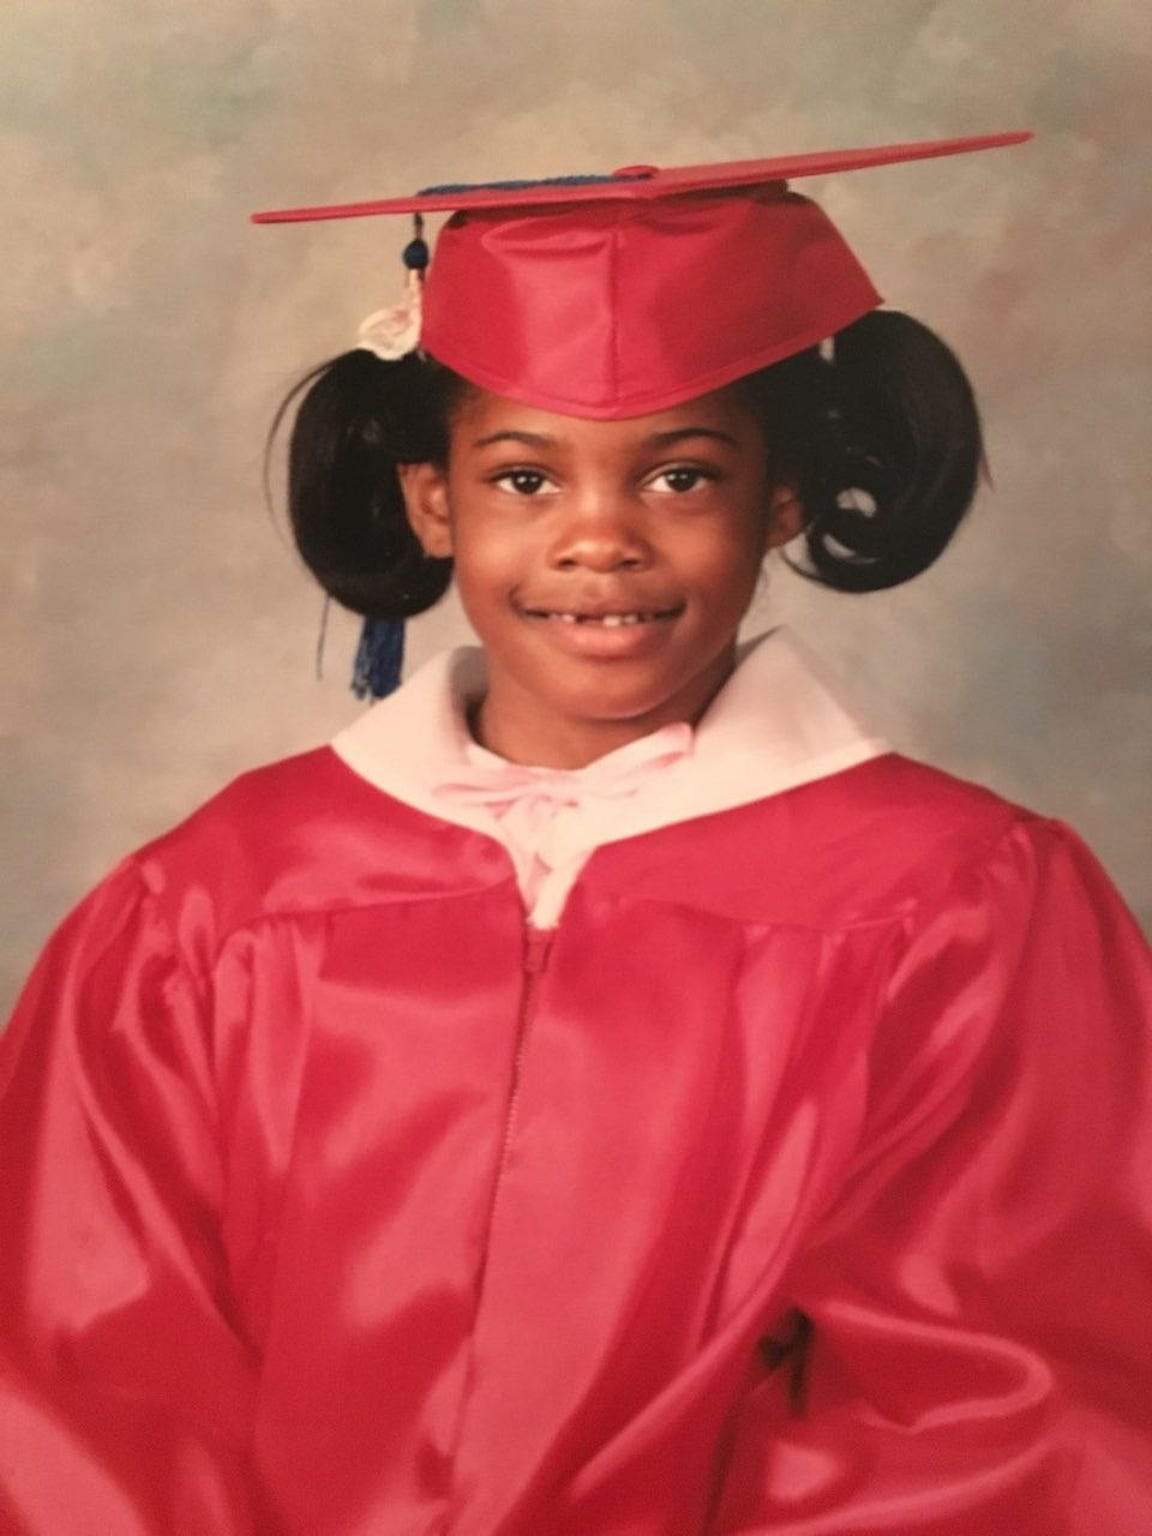 Christina Freeman (then Lewis), age 4, graduating from Head Start in 1986.